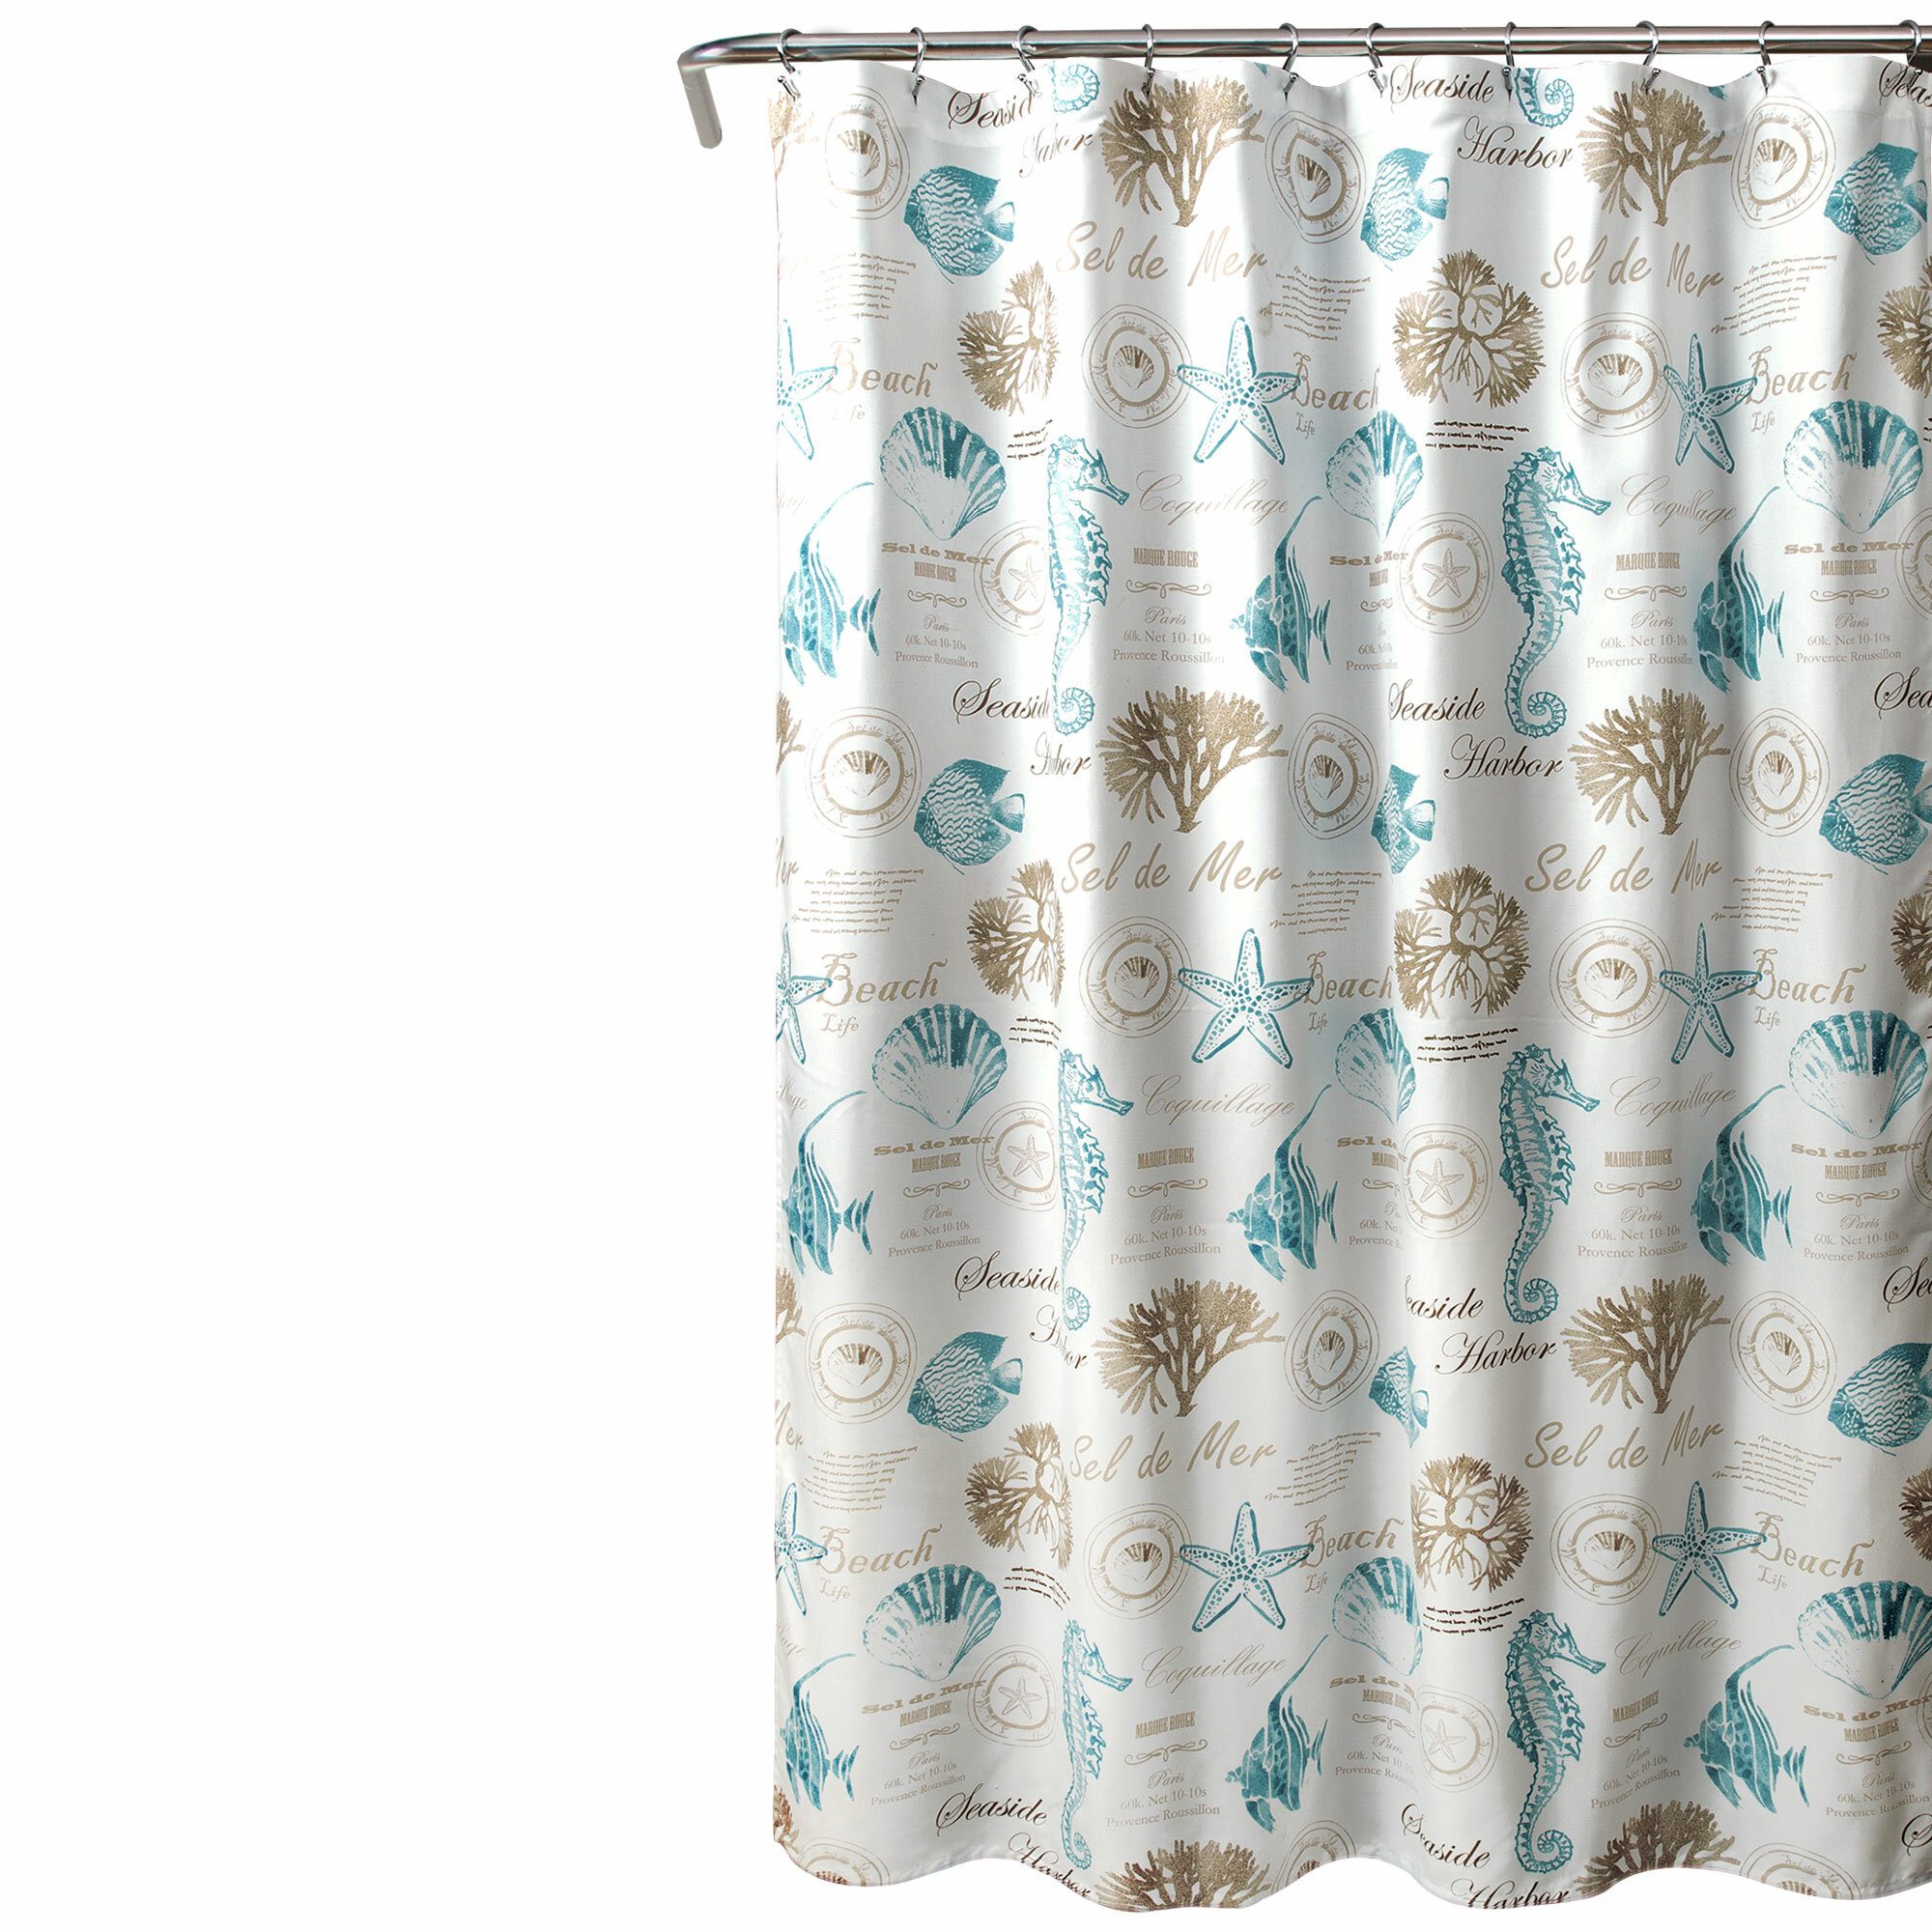 SHELL BLUE SHOWER CURTAIN 12 MATCHING RINGS BATHROOM SET NEW